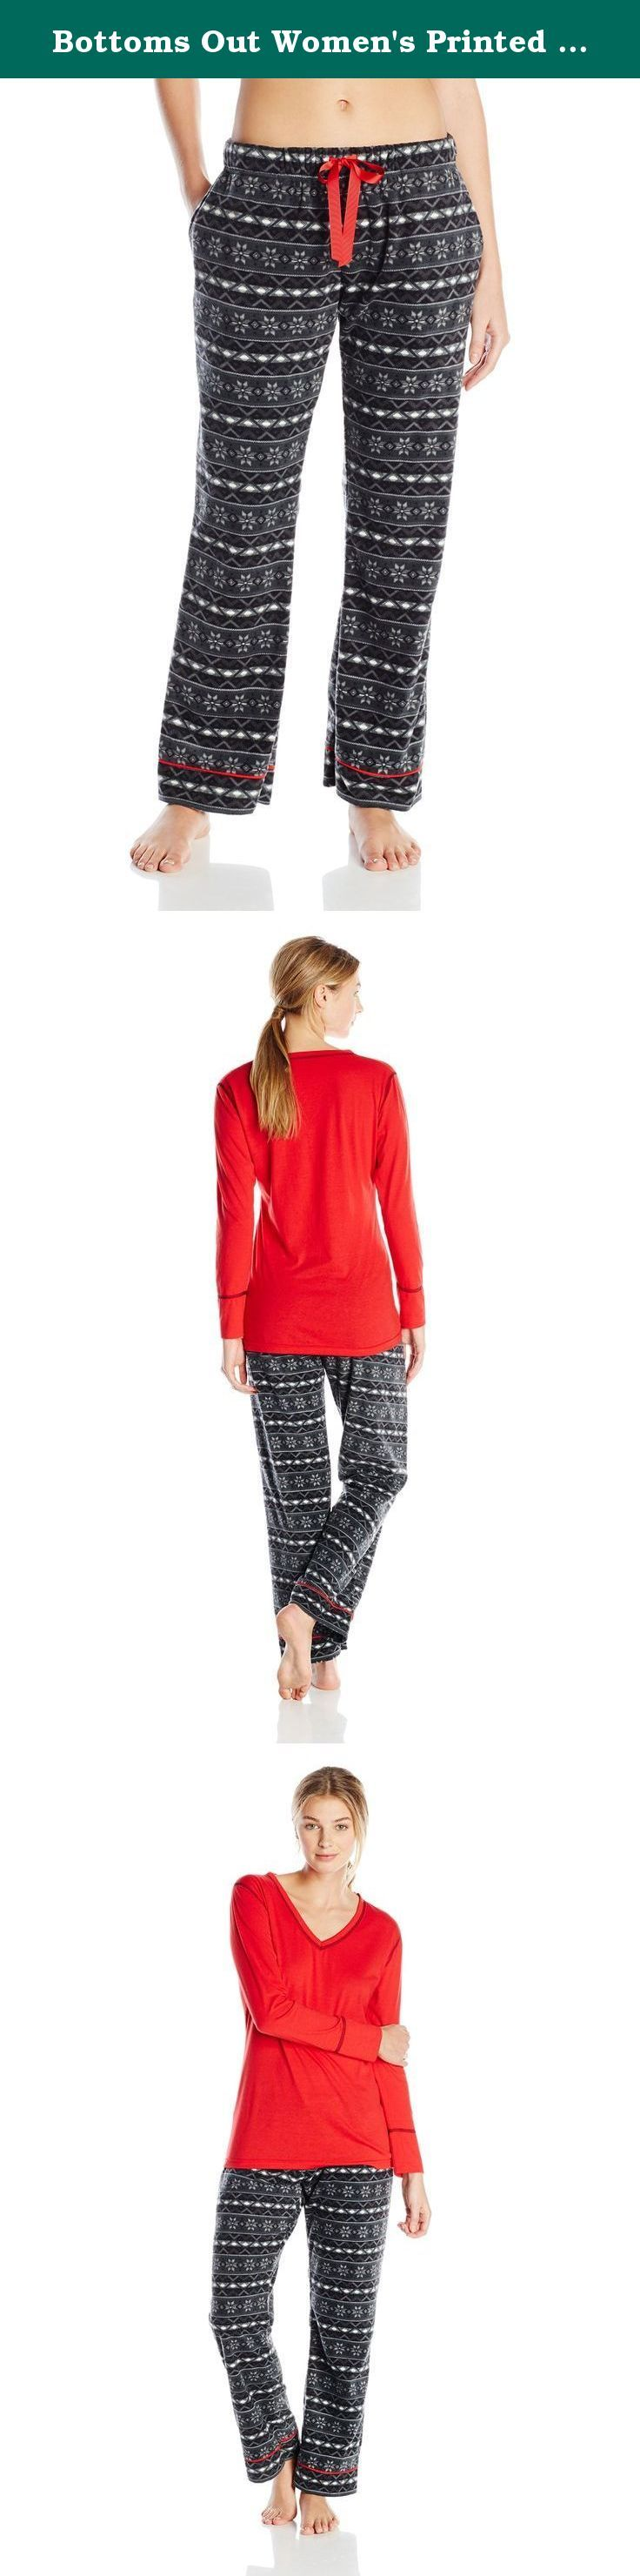 Bottoms Out Women's Printed Ladies Microfleece Pajama Set, Black/Charcoal, X-Large. Ladies pajama set with knit V-neck top and micro fleece pants.